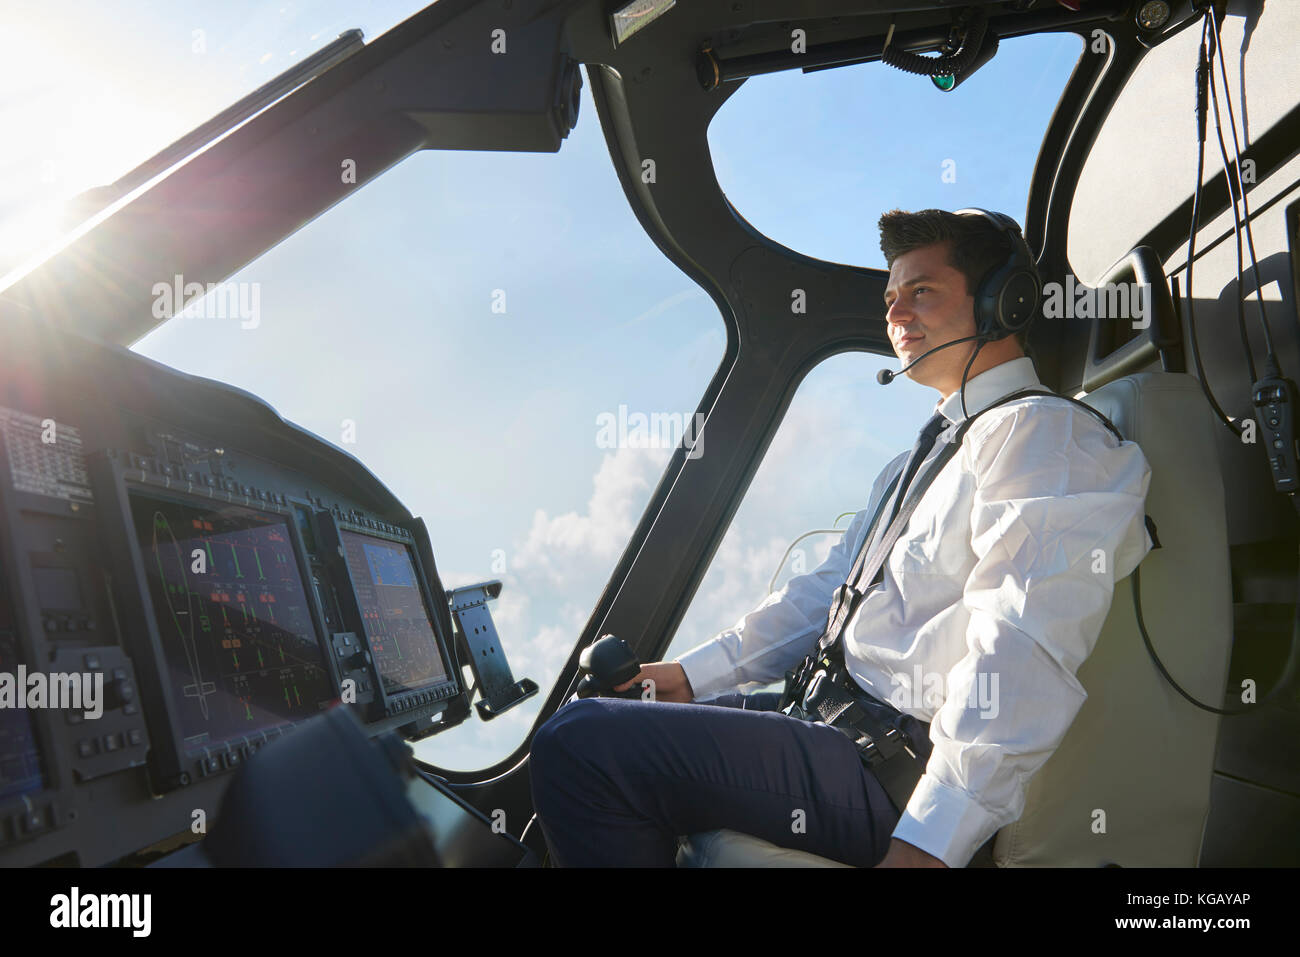 Pilot In Cockpit Of Helicopter During Flight - Stock Image